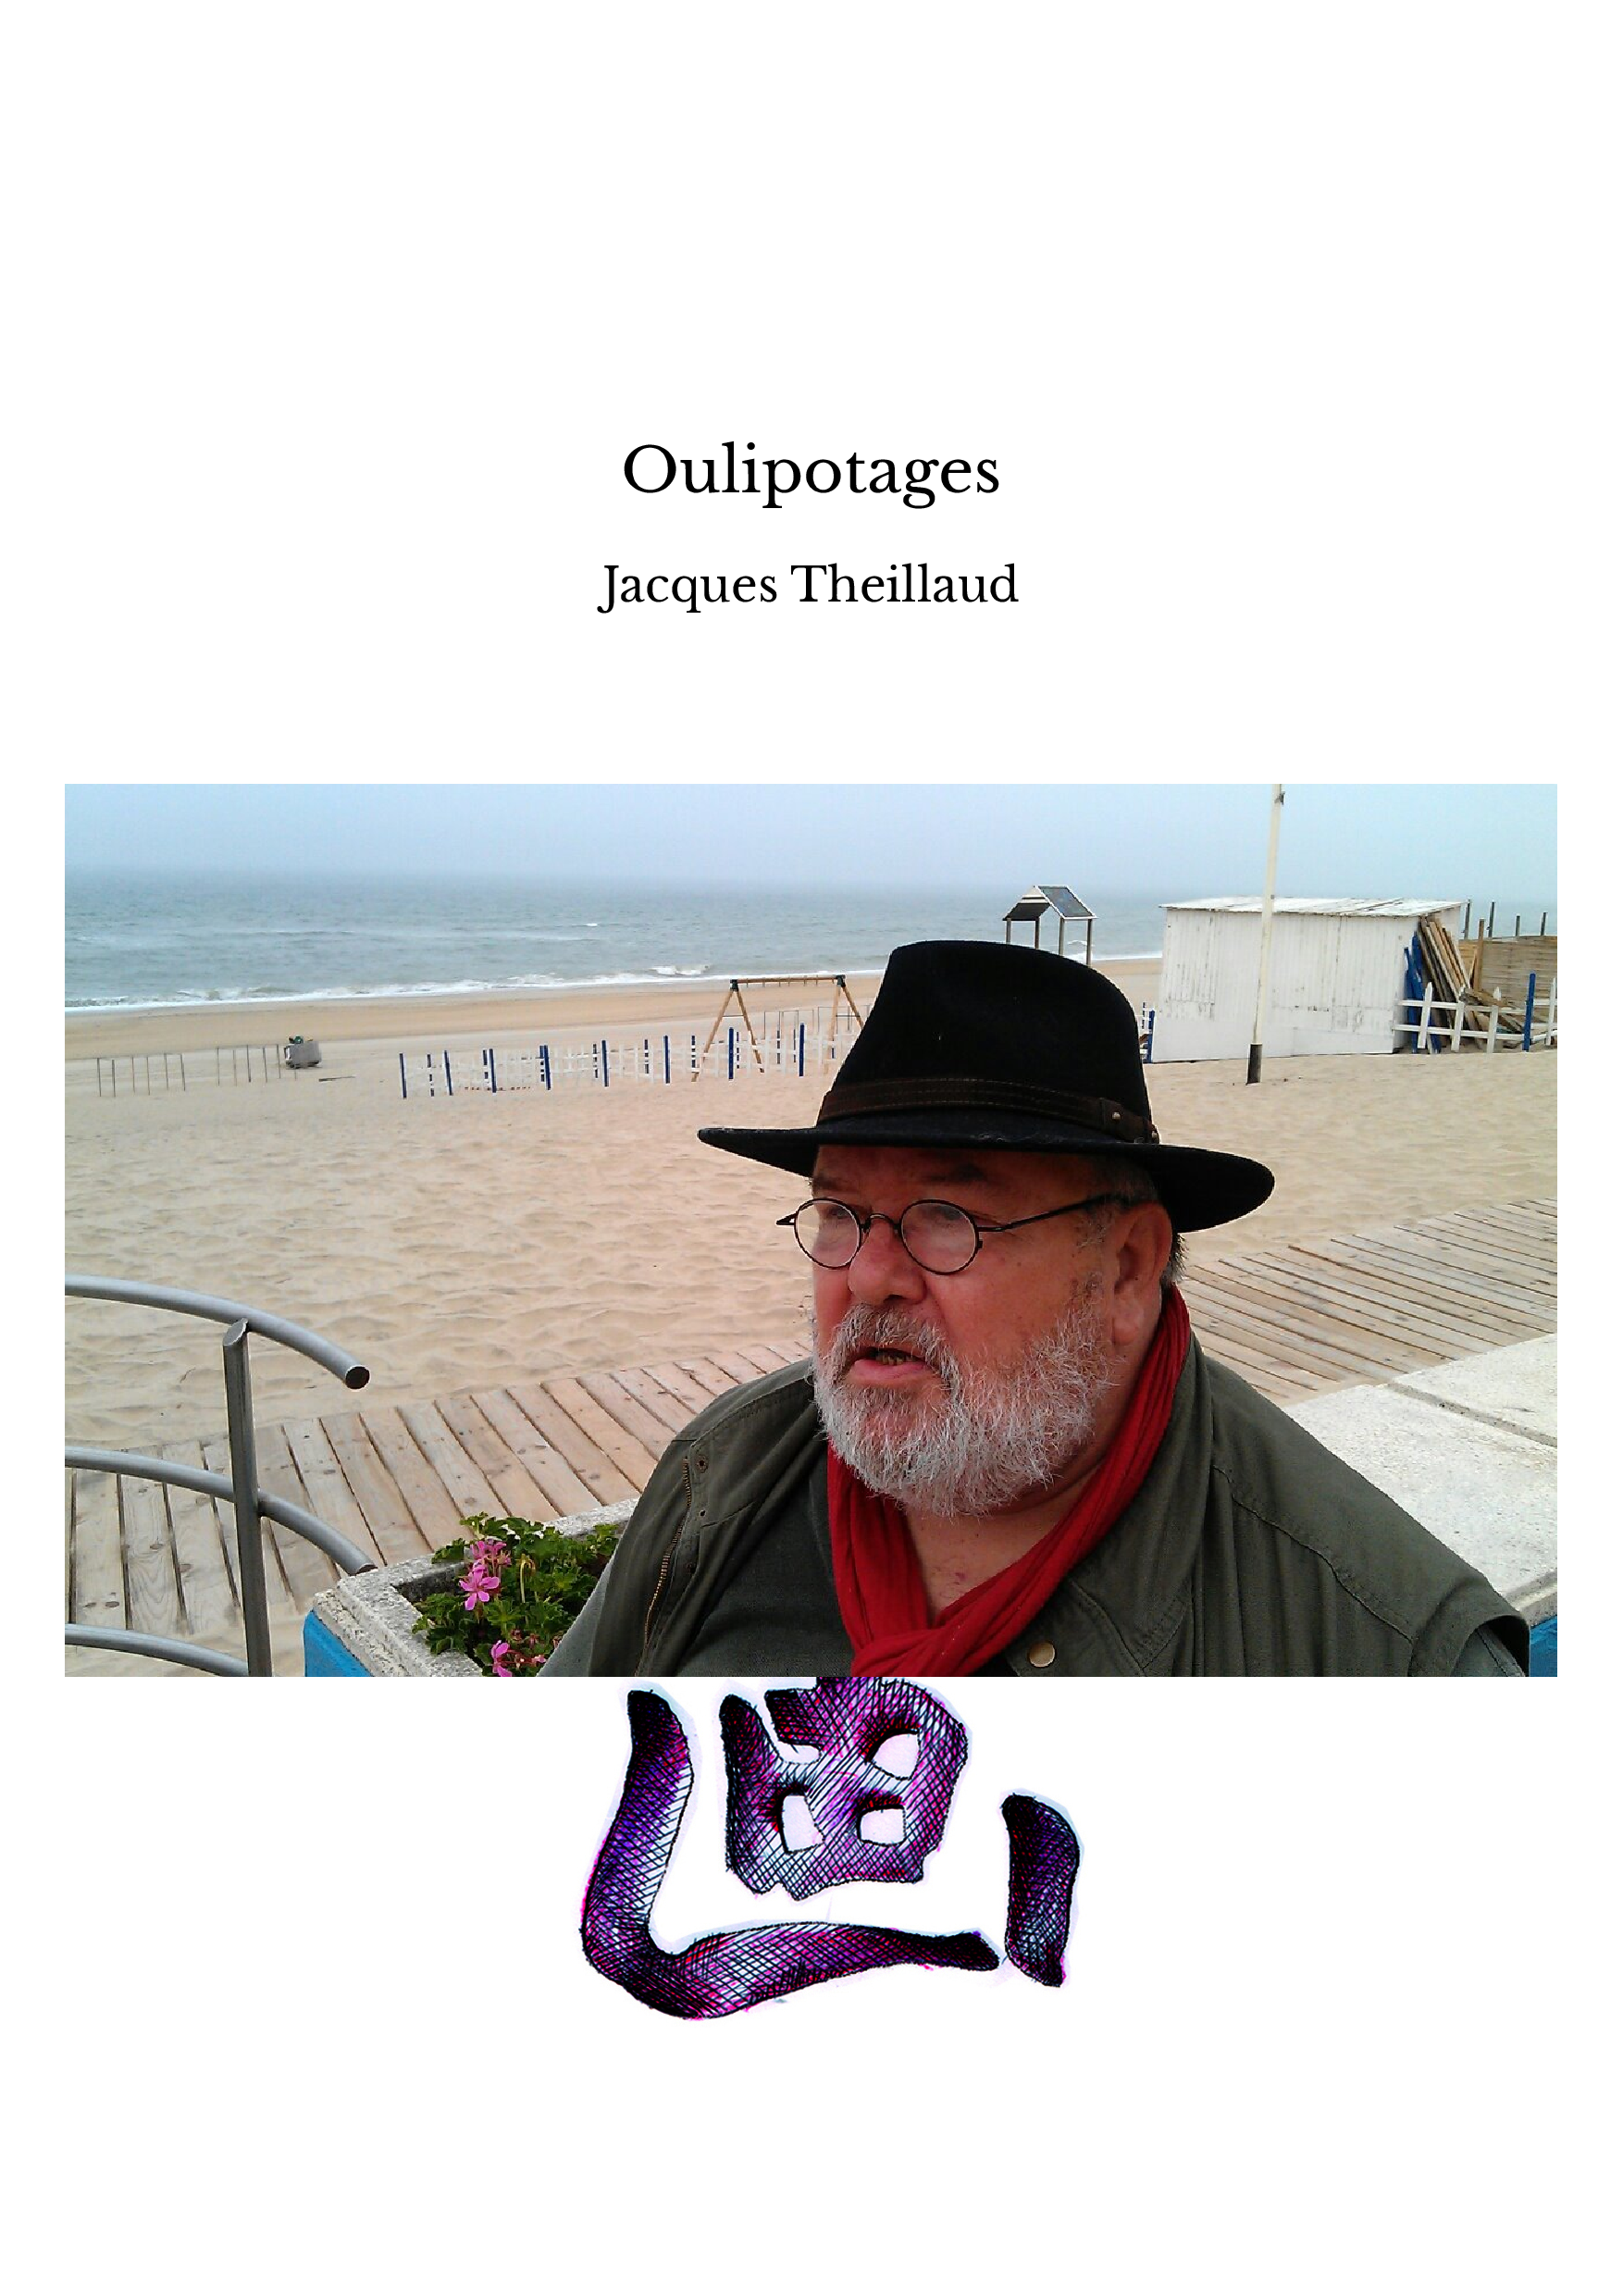 Oulipotages